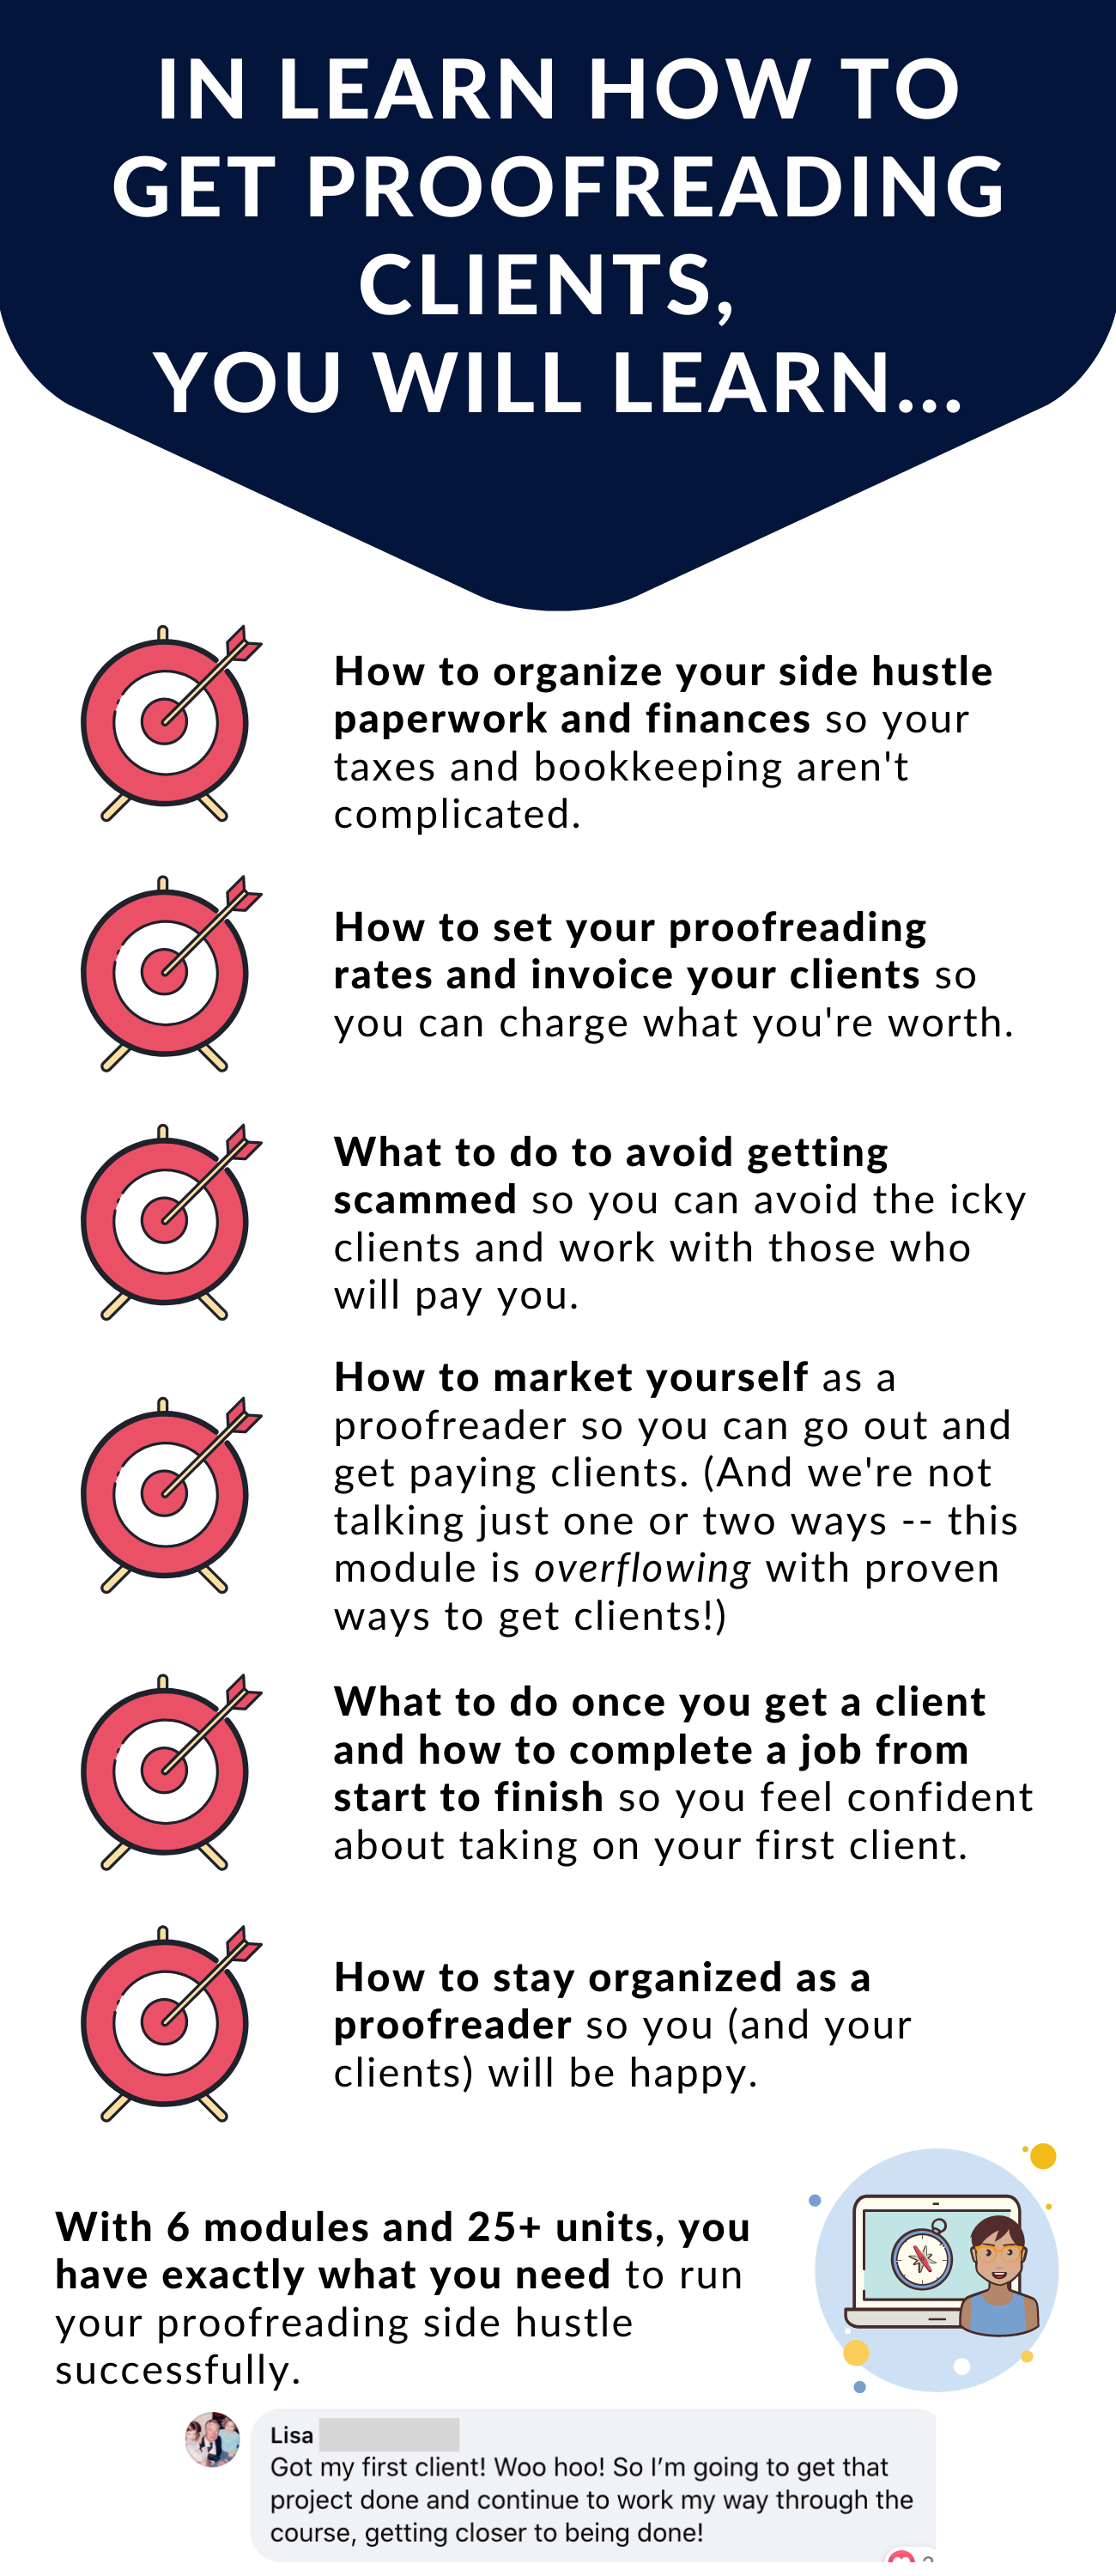 Learn How To Get Proofreading Clients 3